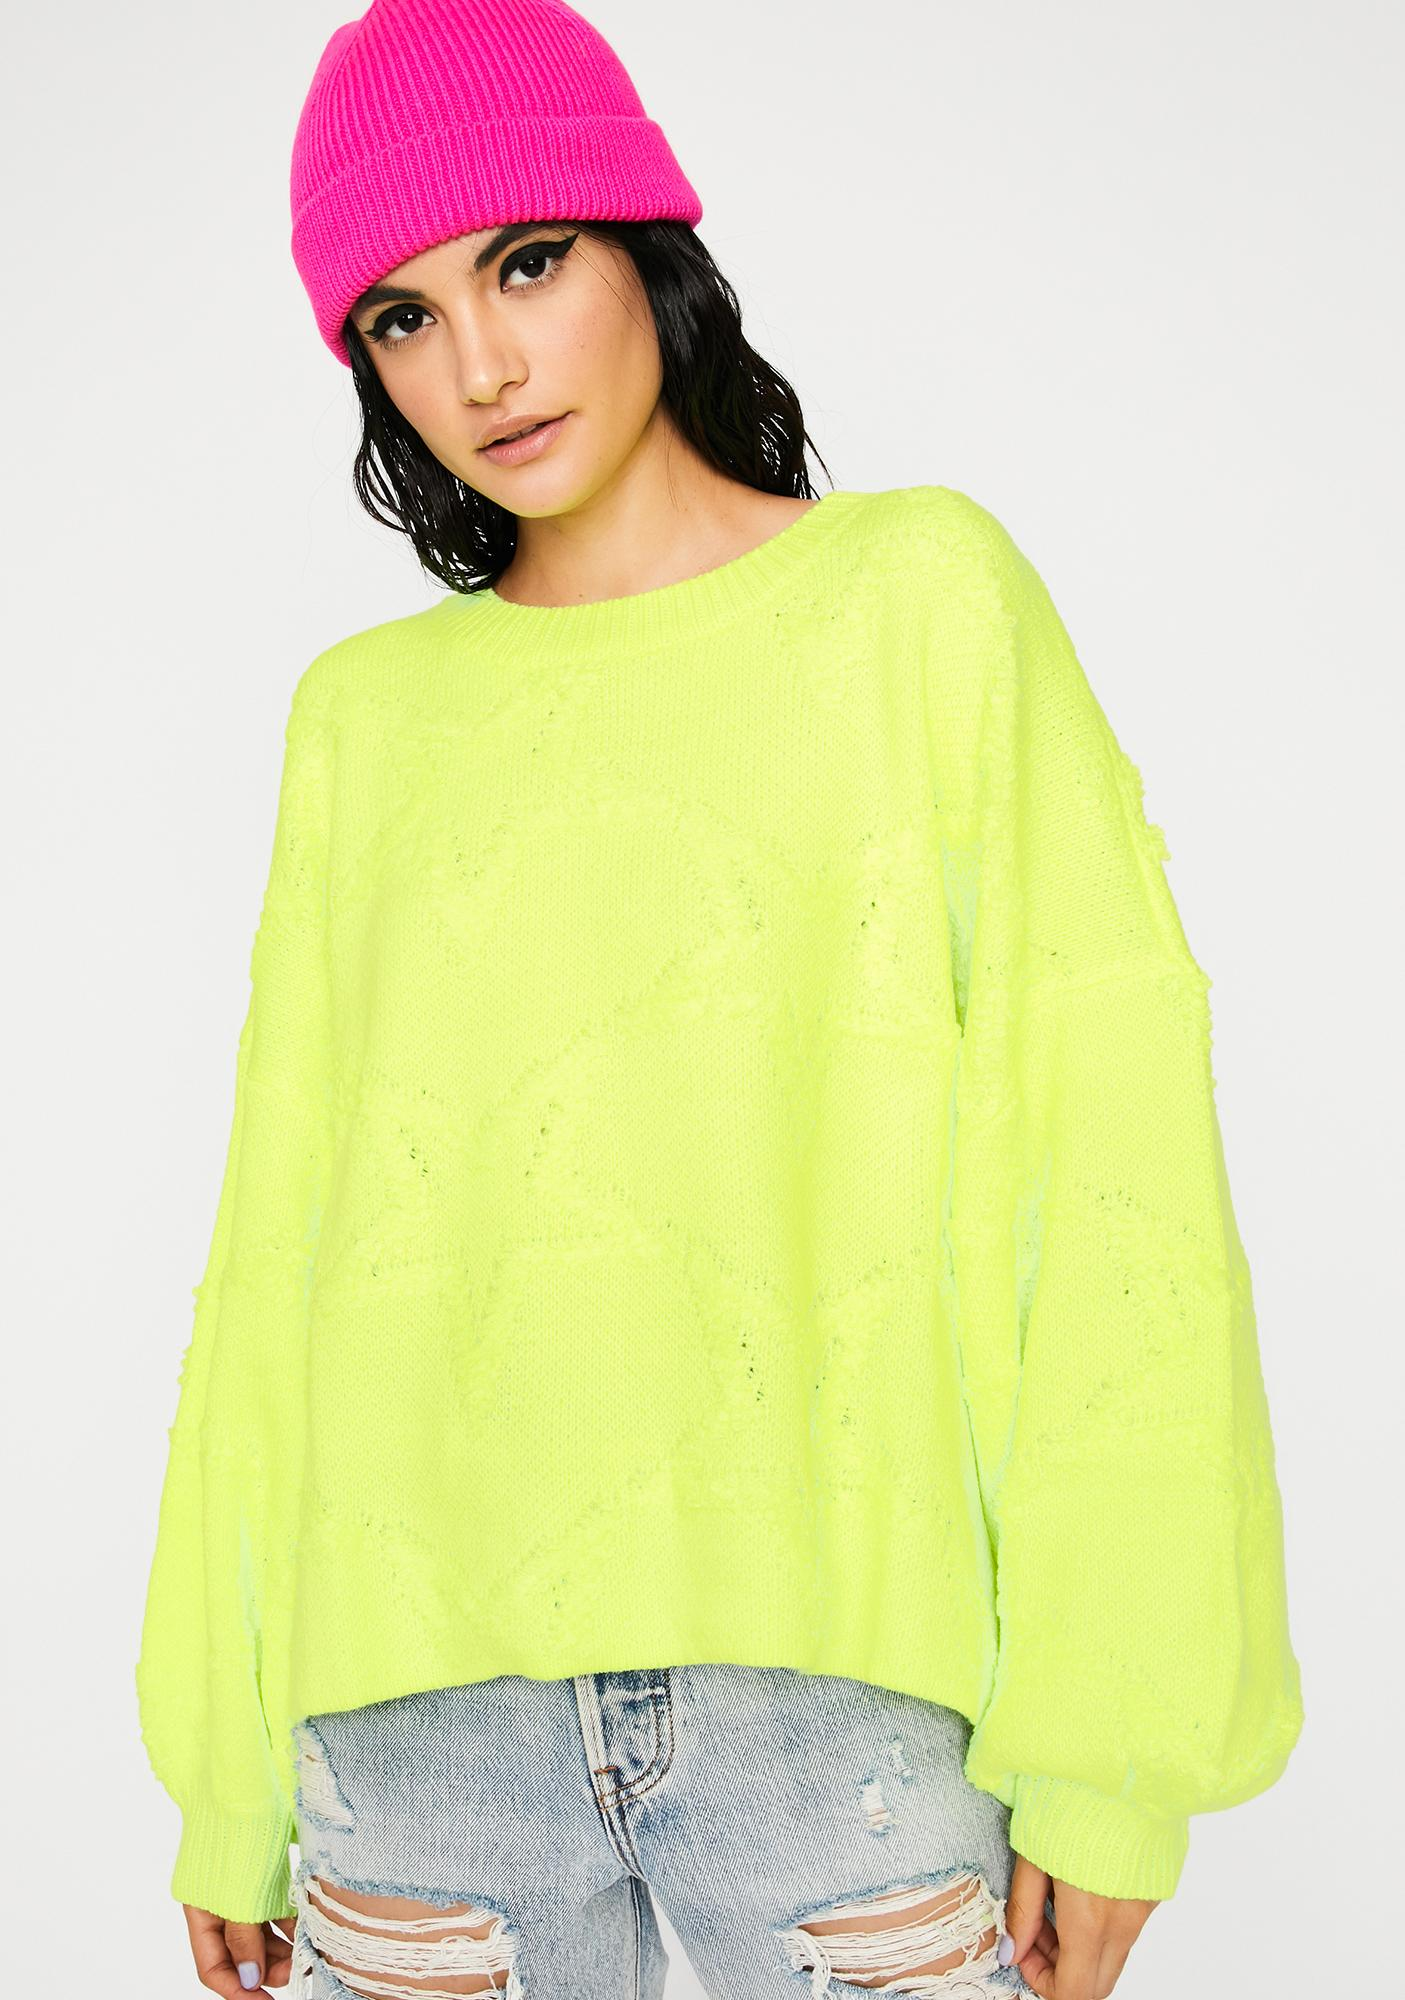 Bee Comfy Cute Knit Sweater